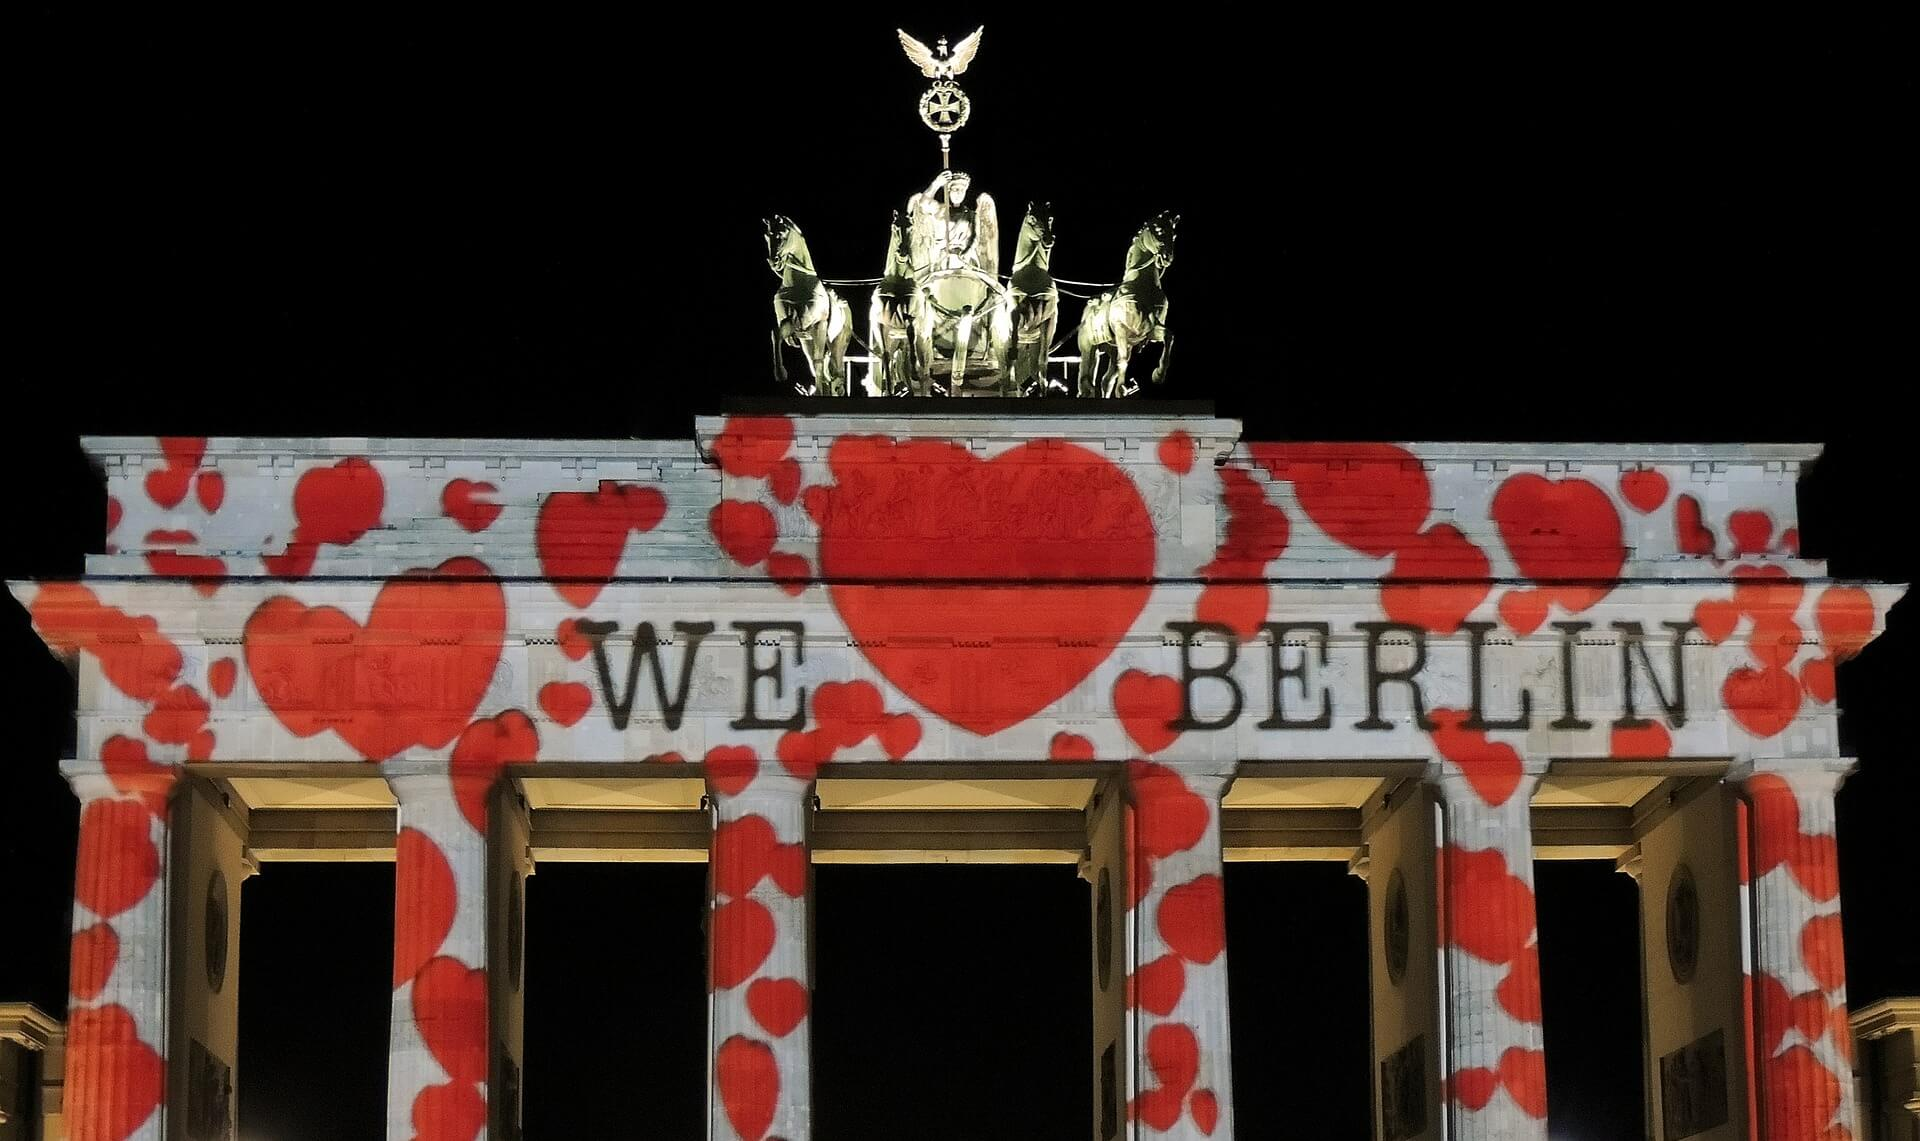 Jobs-Stellenangebote-Berlin-Brandenburger-Tor-We-Love-Berlin-Lichtkunst-PB